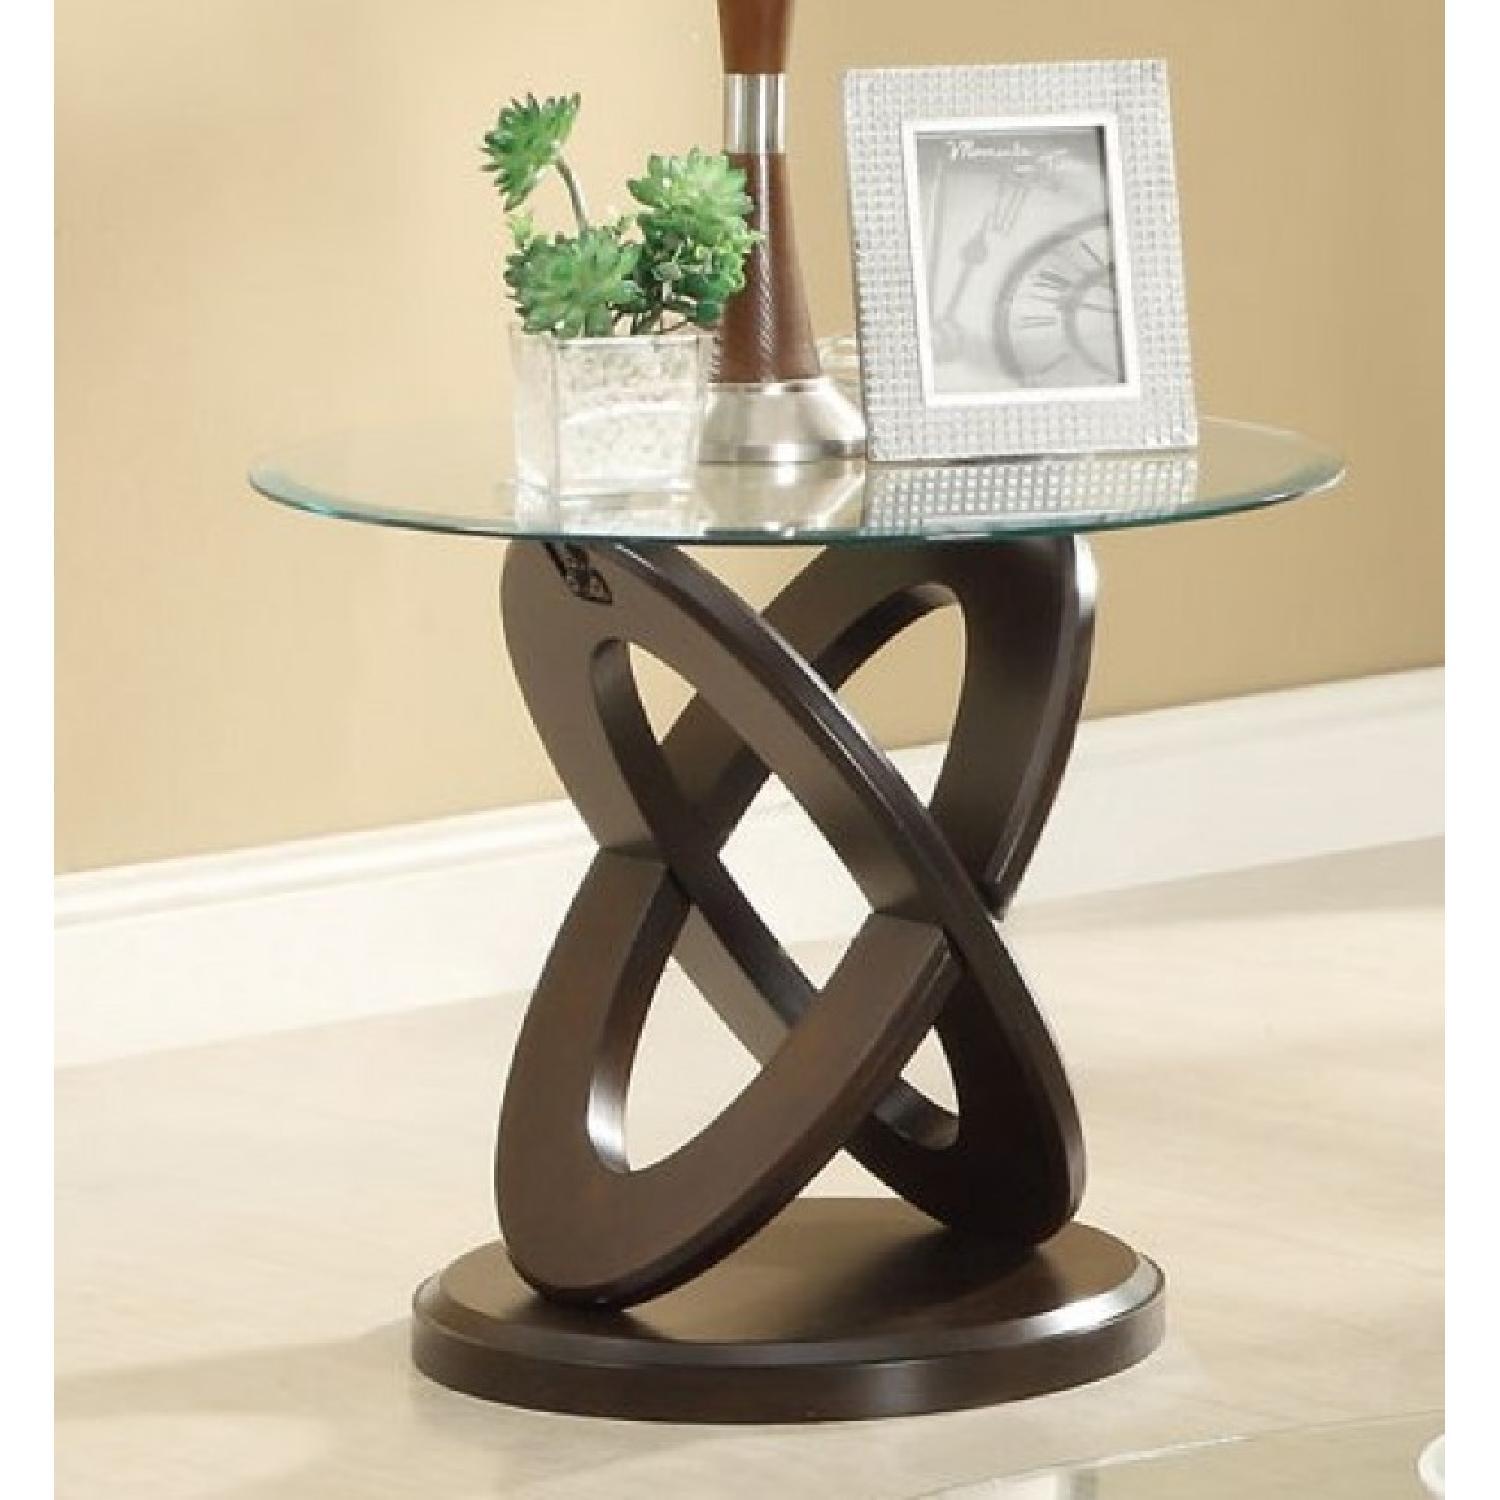 Oval Glass End Table w/ Cappuccino Legs - image-2